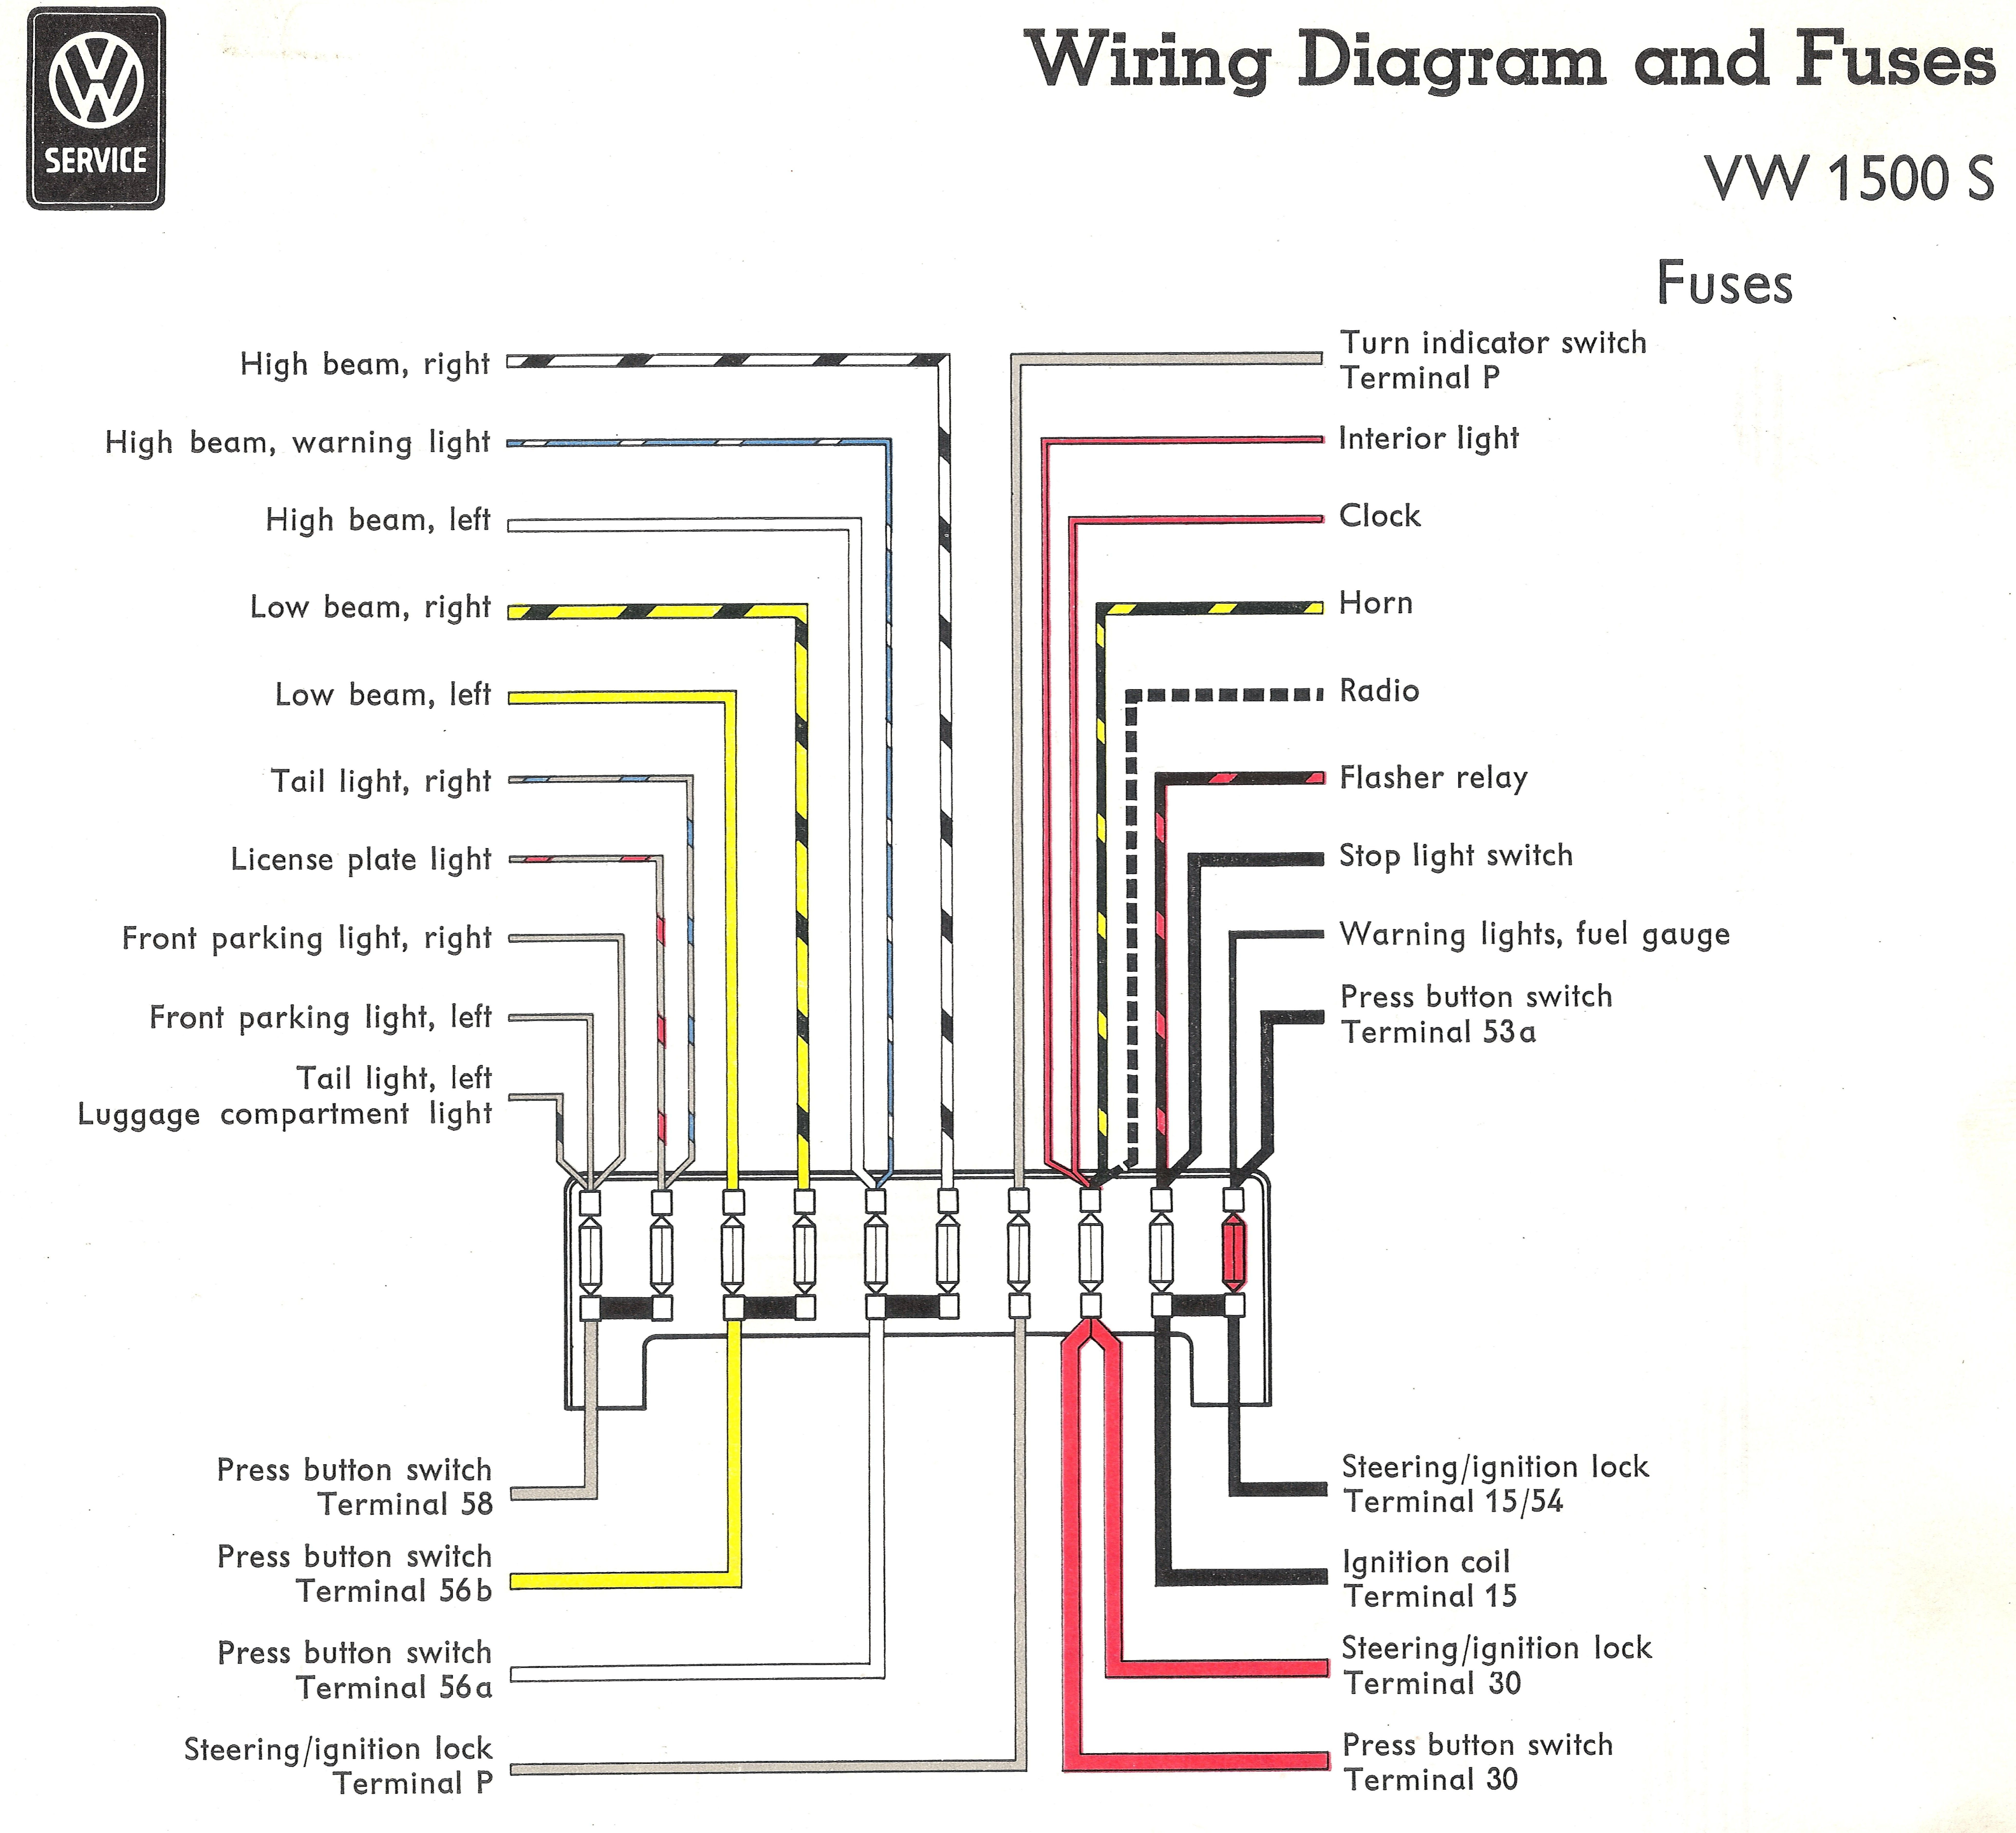 2000 Vw Jetta Vr6 Engine Diagram Vw Fuse Box Wiring Diagram Wiring Diagrams  Of 2000 Vw Jetta Vr6 Engine Diagram Stunning Vw Golf … | Fuse box, Car  fuses, Vw beetles | For A 2000 Vw Jetta Vr6 Wiring Diagram |  | Pinterest